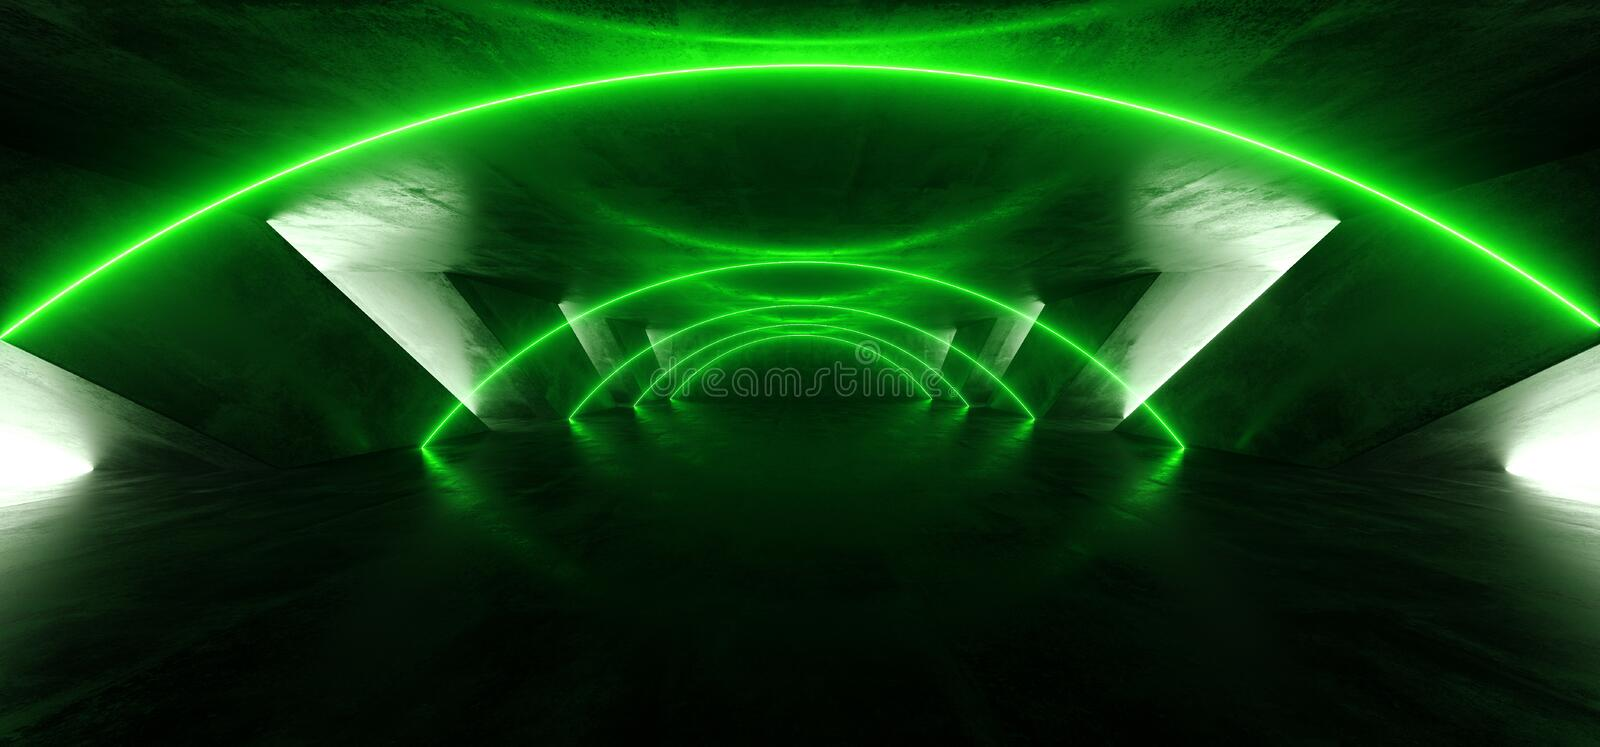 Smoke Arc Entrance Laser Fluorescent Retro Sci Fi Futuristic Neon Glowing Green Cyber Luminous Vibrant Lights In Dark Empty Stage stock illustration